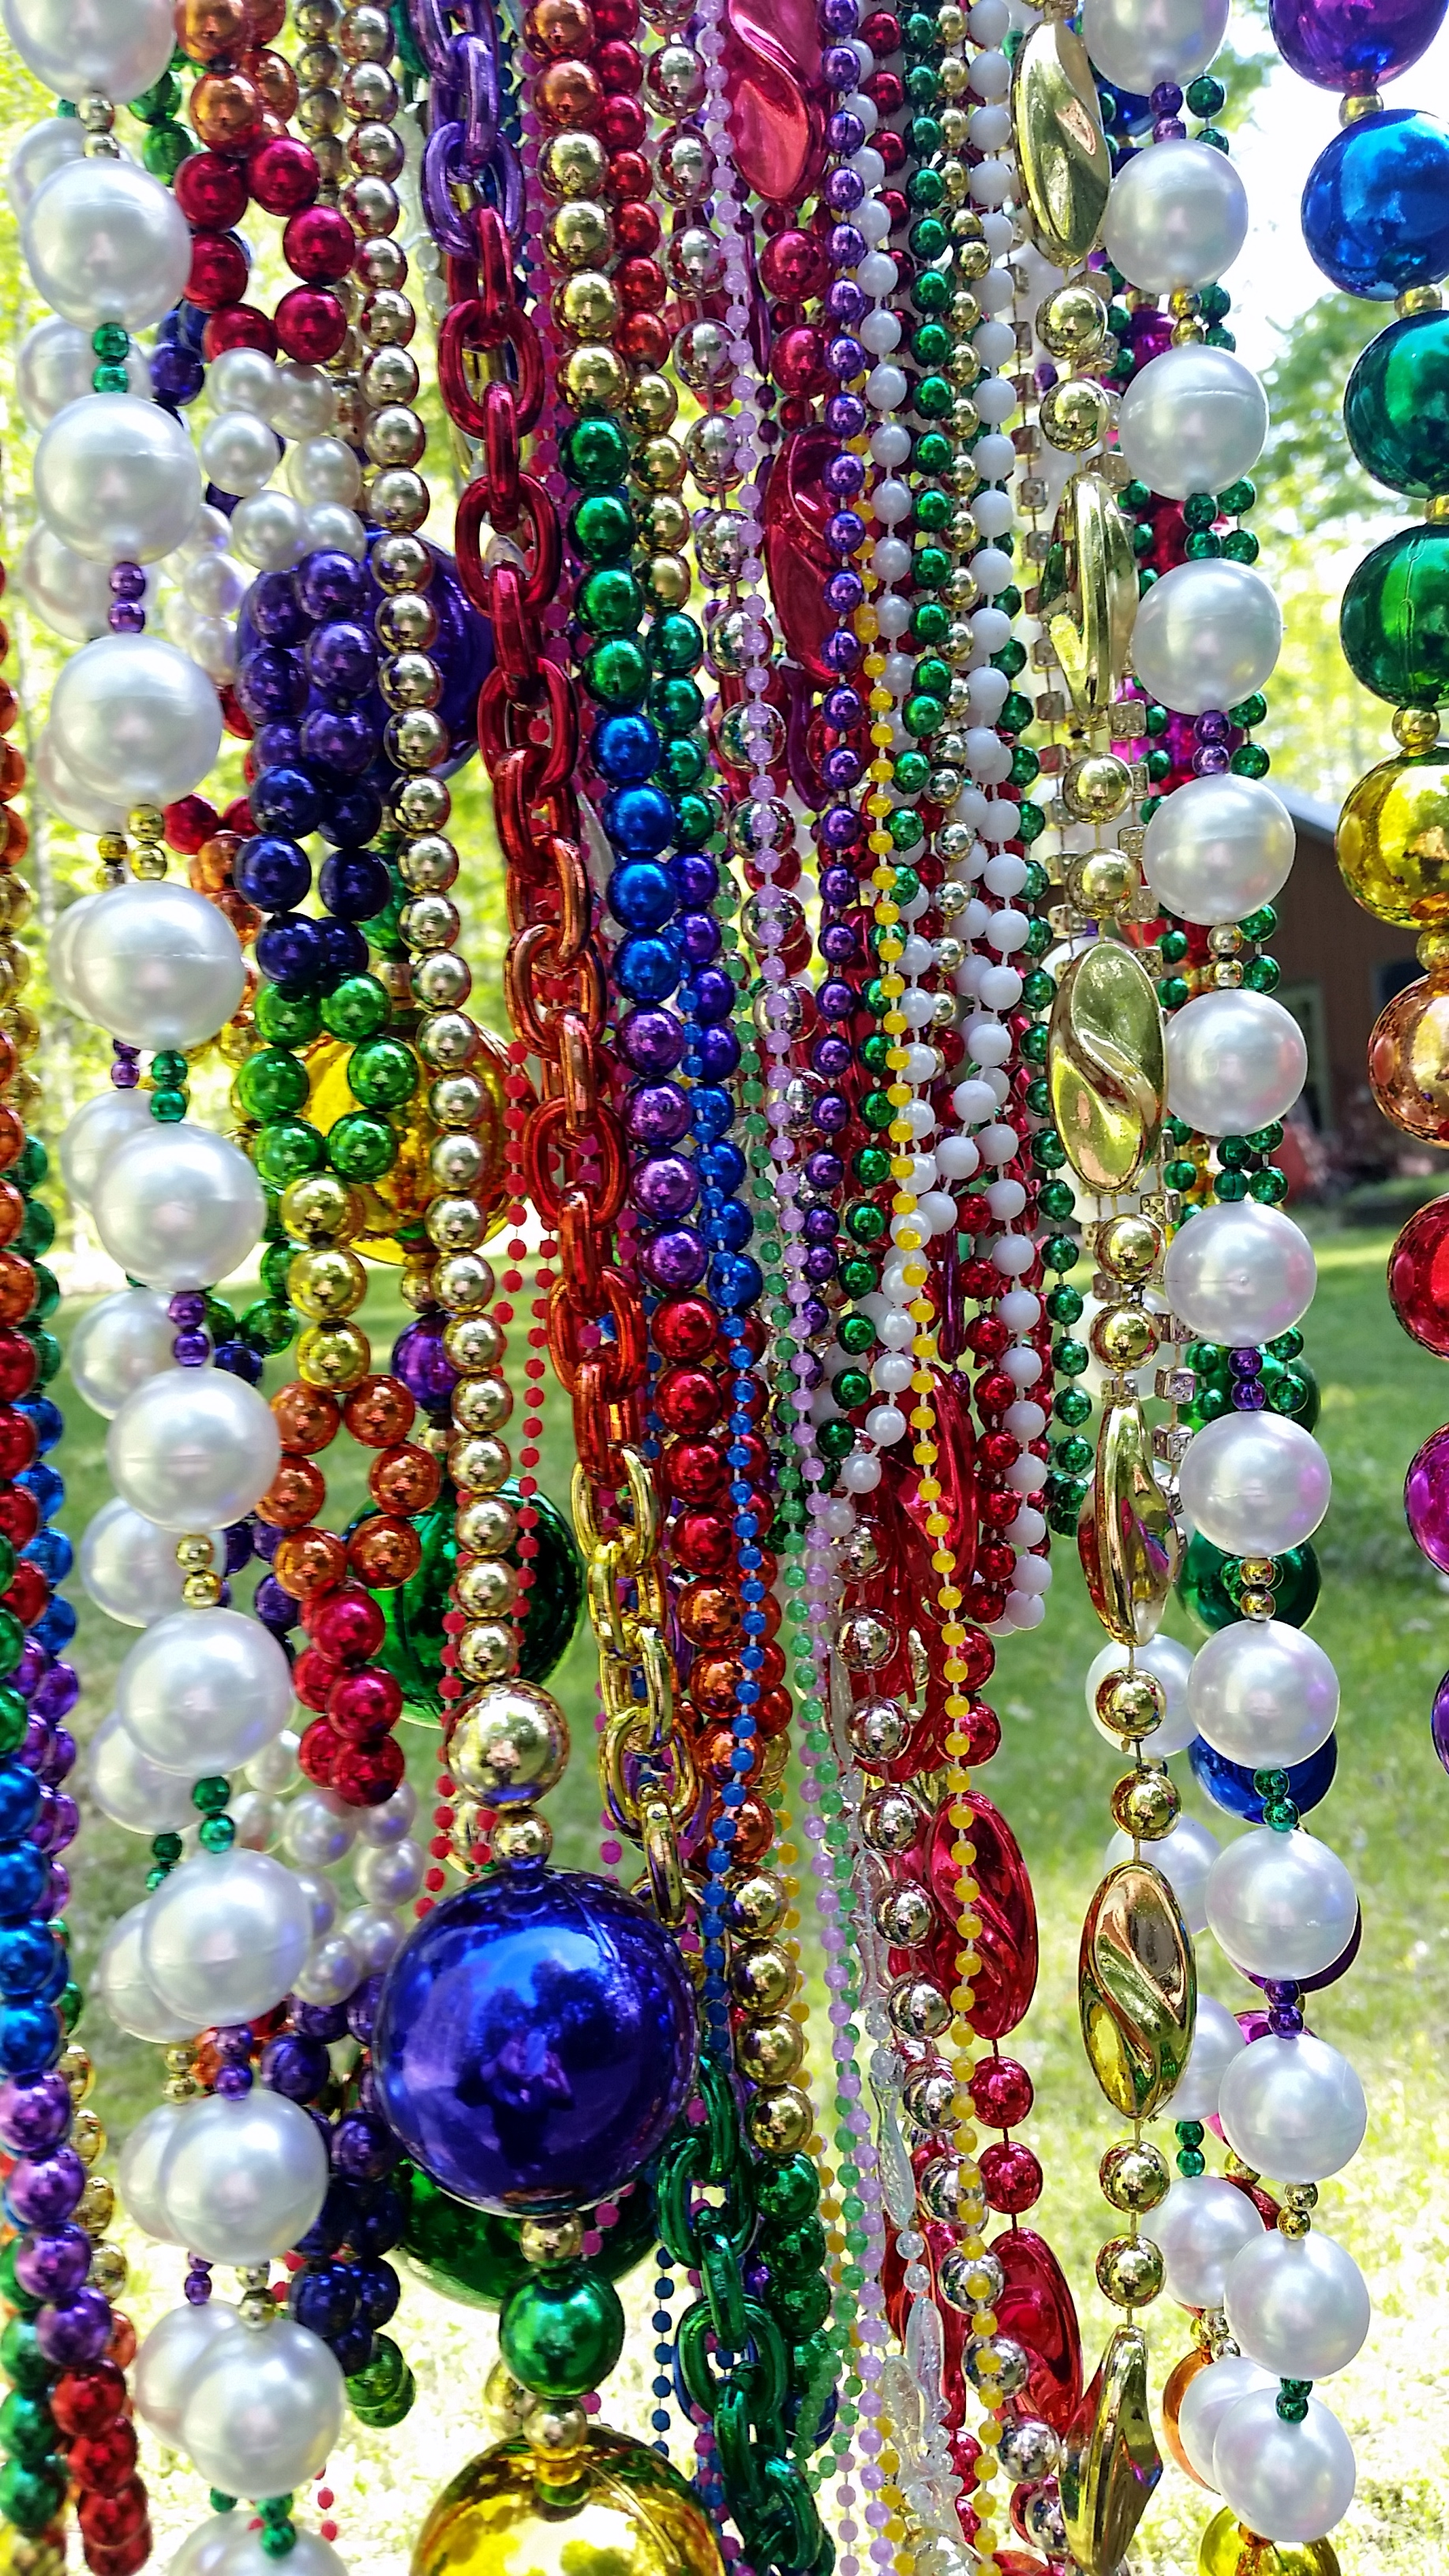 traditions know gras mardi what more krewes fans and krewe in the history to toss on cups carnival riders revelers doubloons float beads time